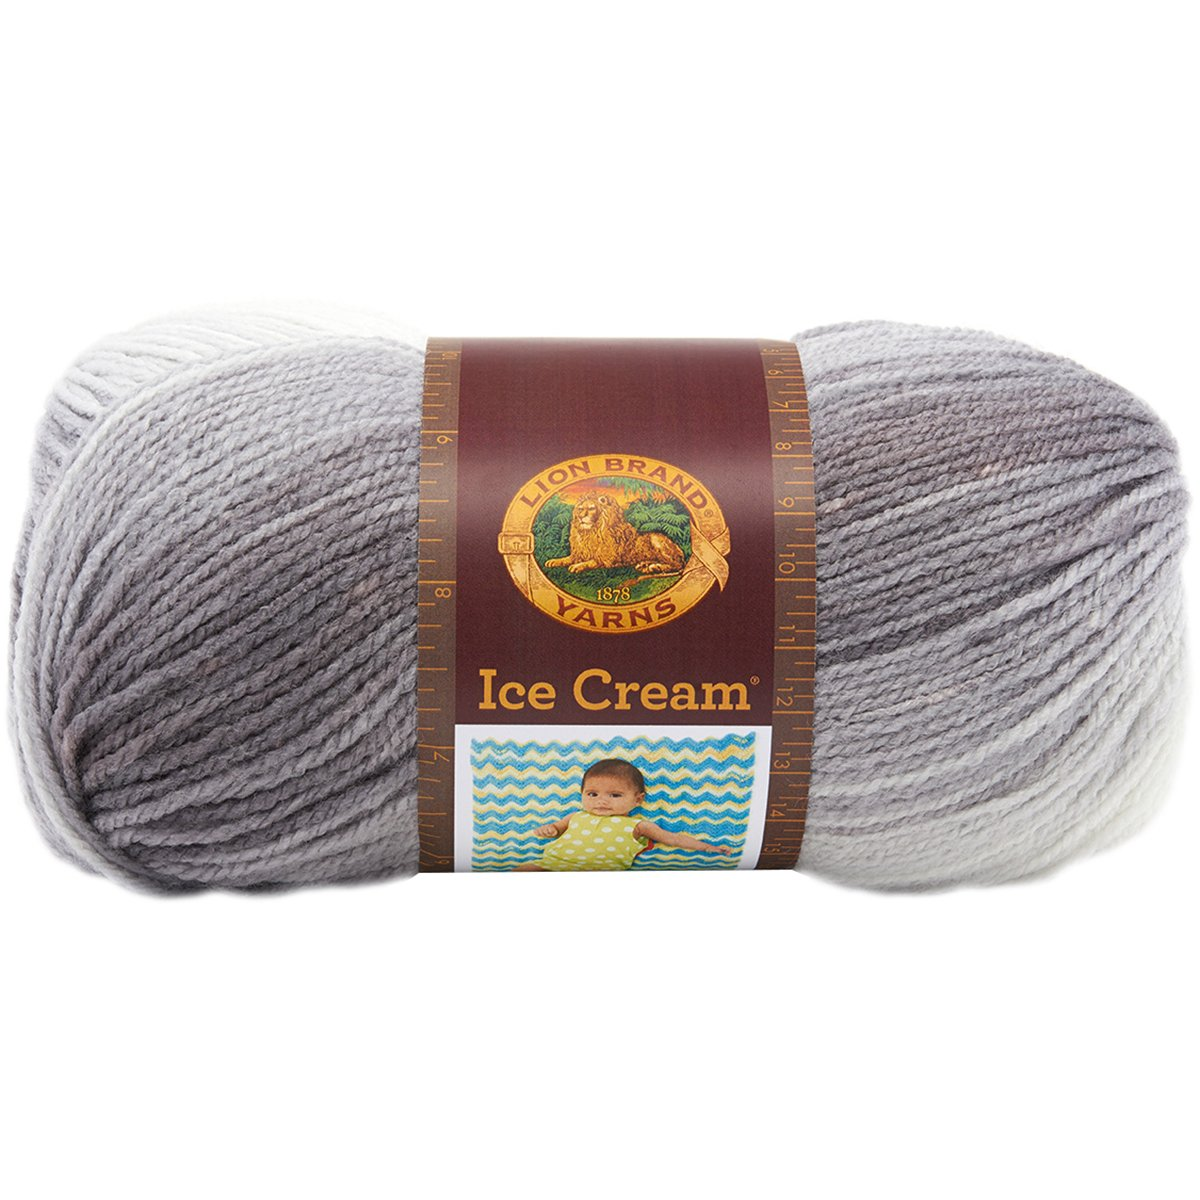 Lion Brand Yarn 923-201 Ice Cream Yarn, Cotton Candy